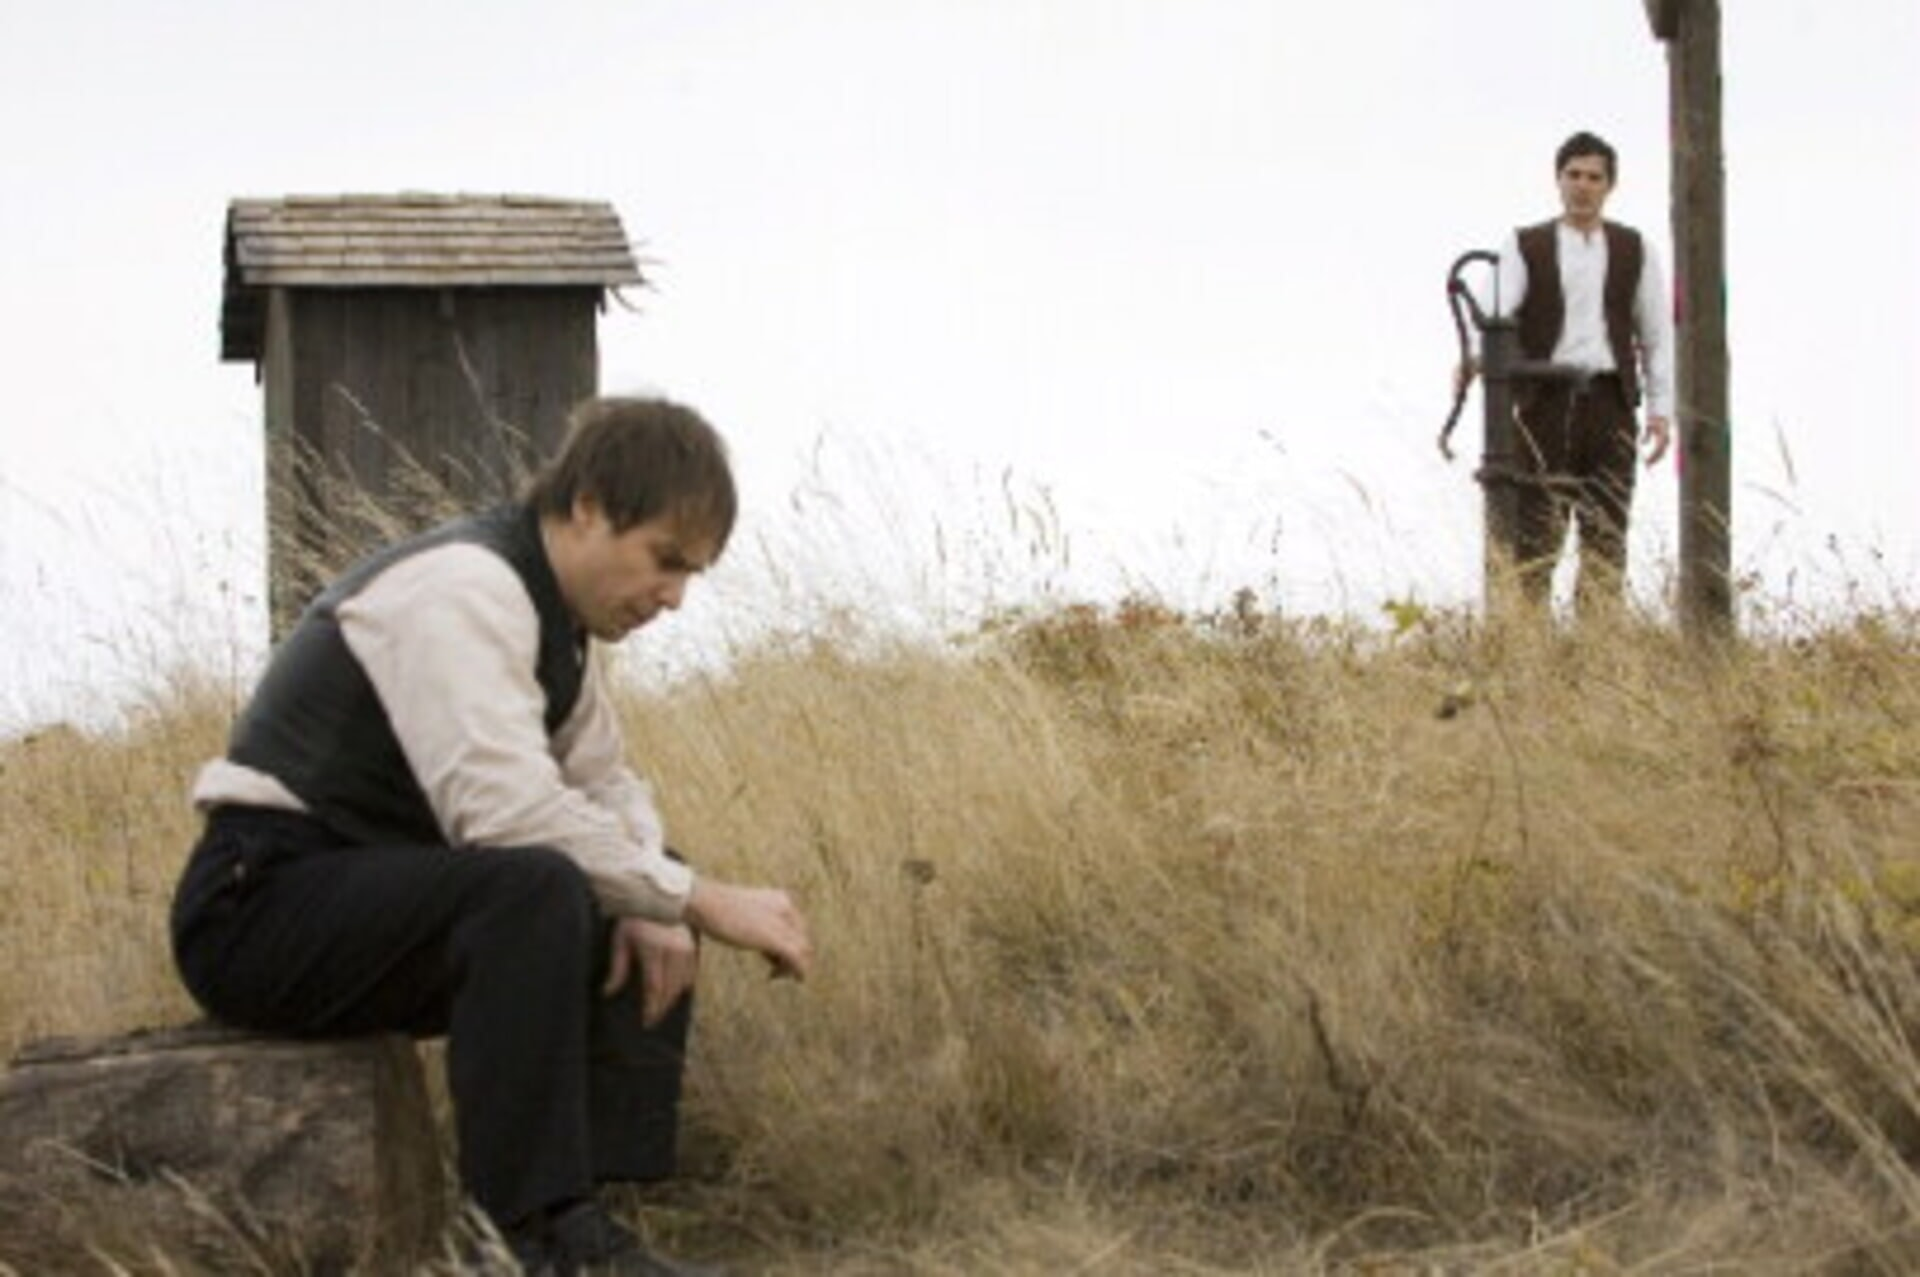 The Assassination of Jesse James by the Coward Robert Ford - Image 23